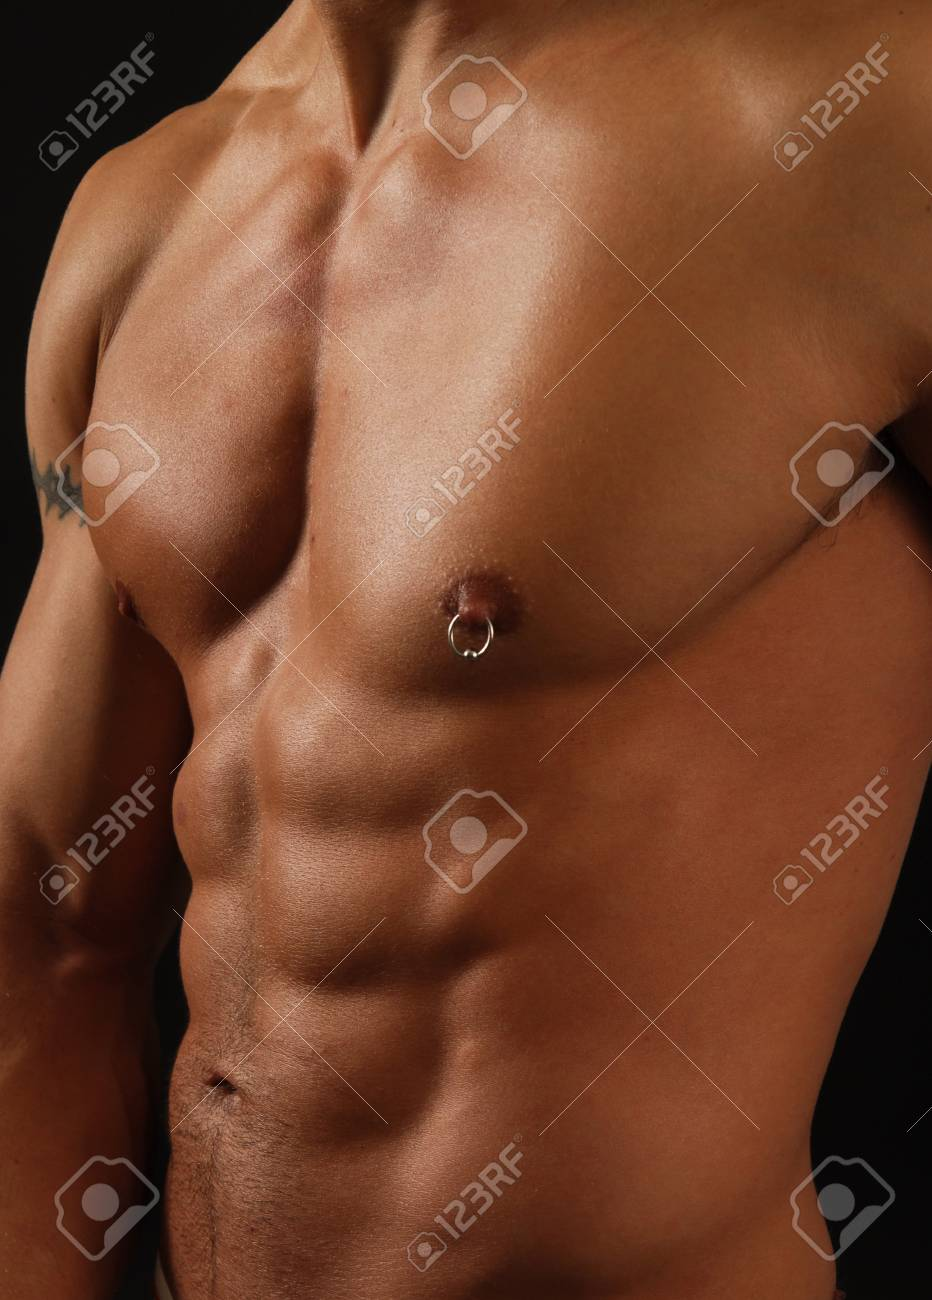 Close up of a muscular tan male torso Stock Photo - 9888219